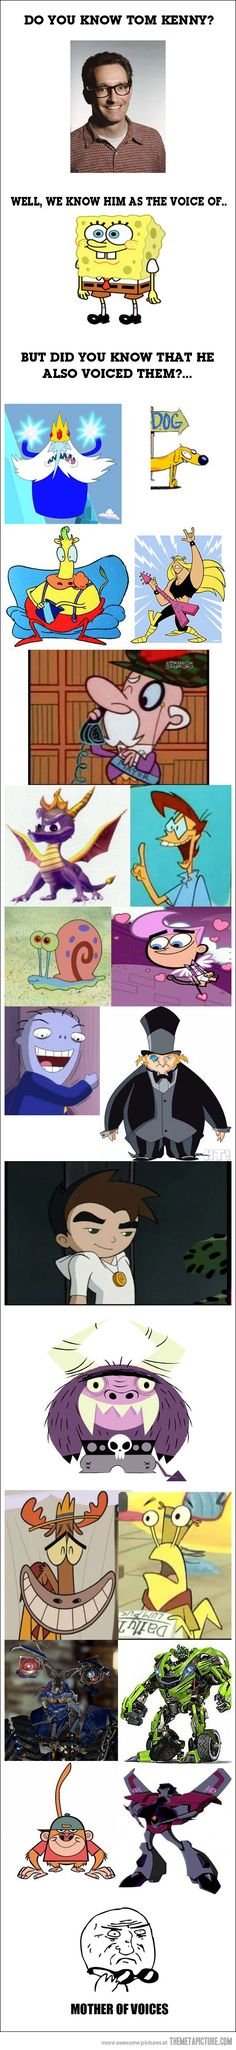 The amazing talent of Tom Kenny